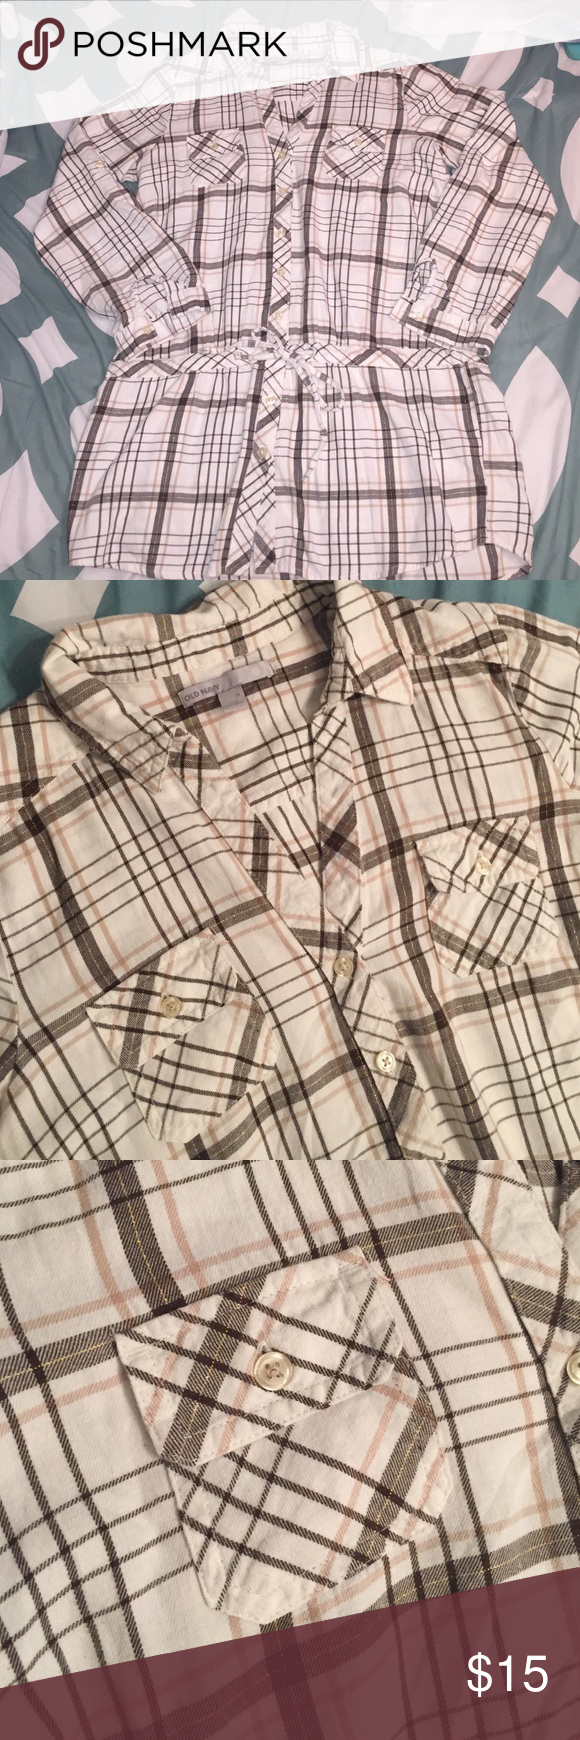 Old Navy plaid tunic Old Navy plaid brown, cream, tan and gold tunic. Great condition, smoke free home, great for fall! Size medium Old Navy Tops Tunics